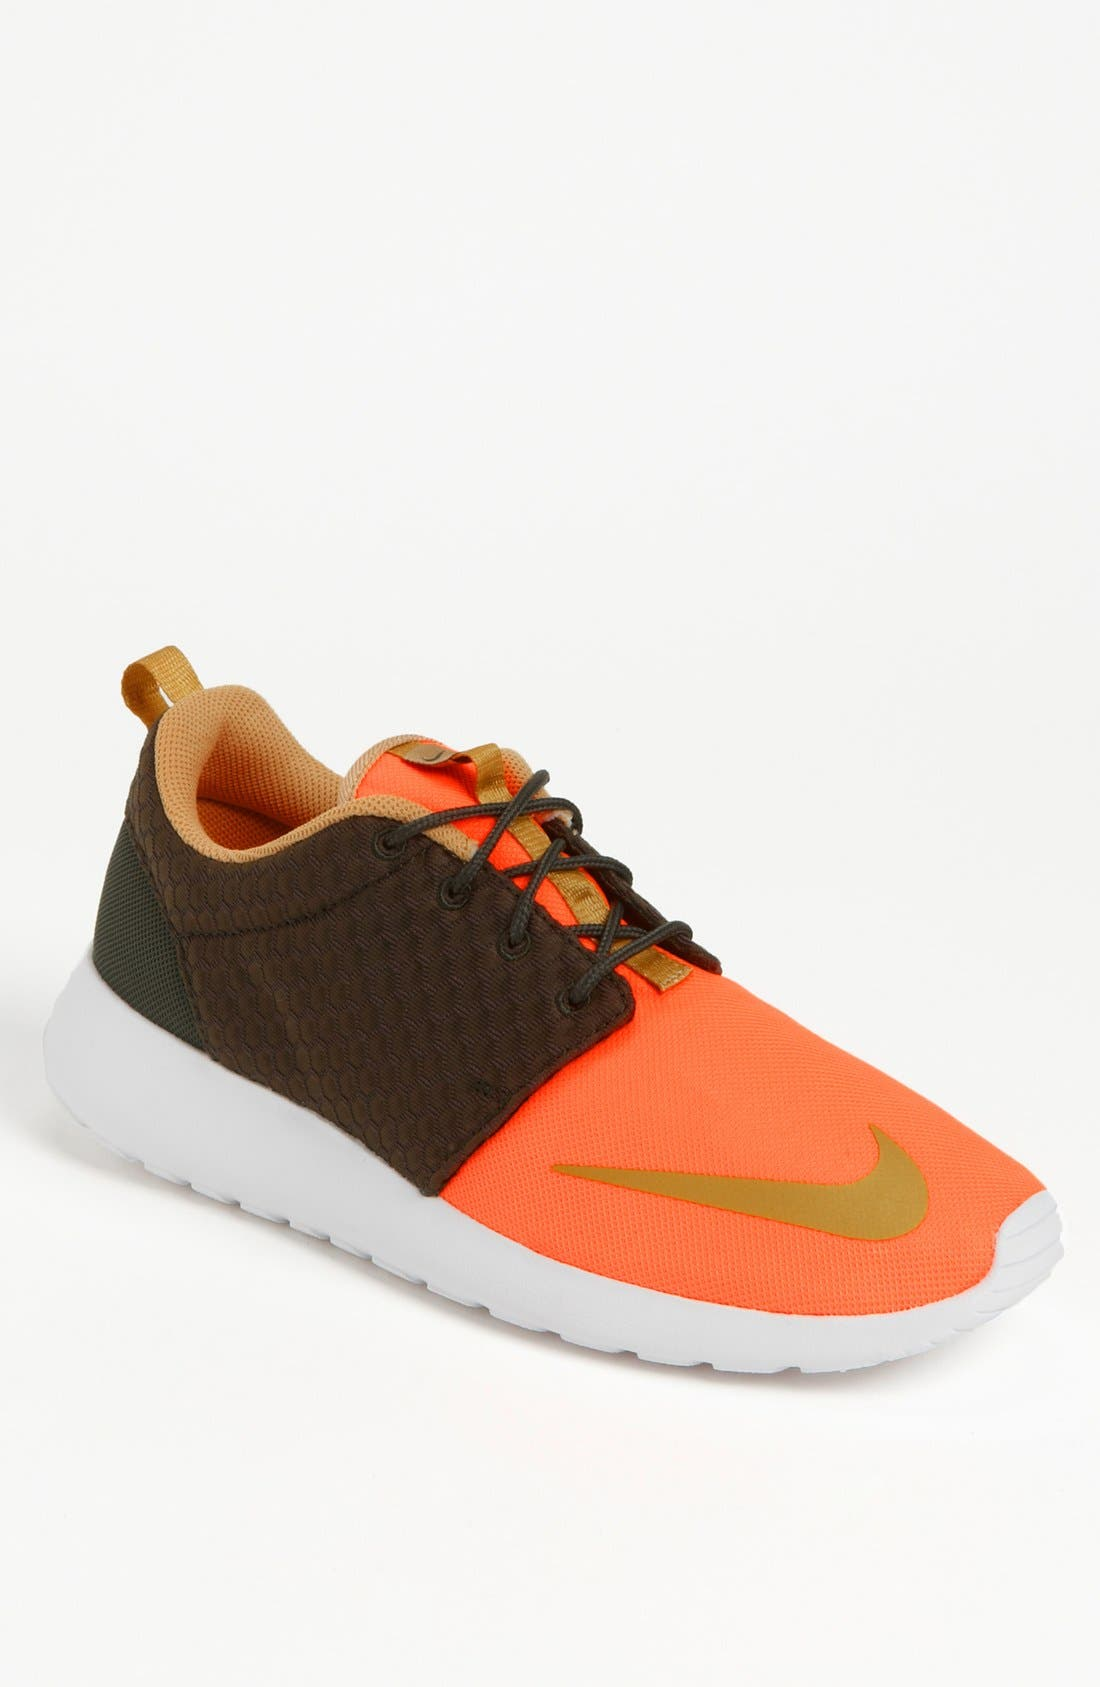 Main Image - Nike 'Roshe Run FB' Sneaker (Men)